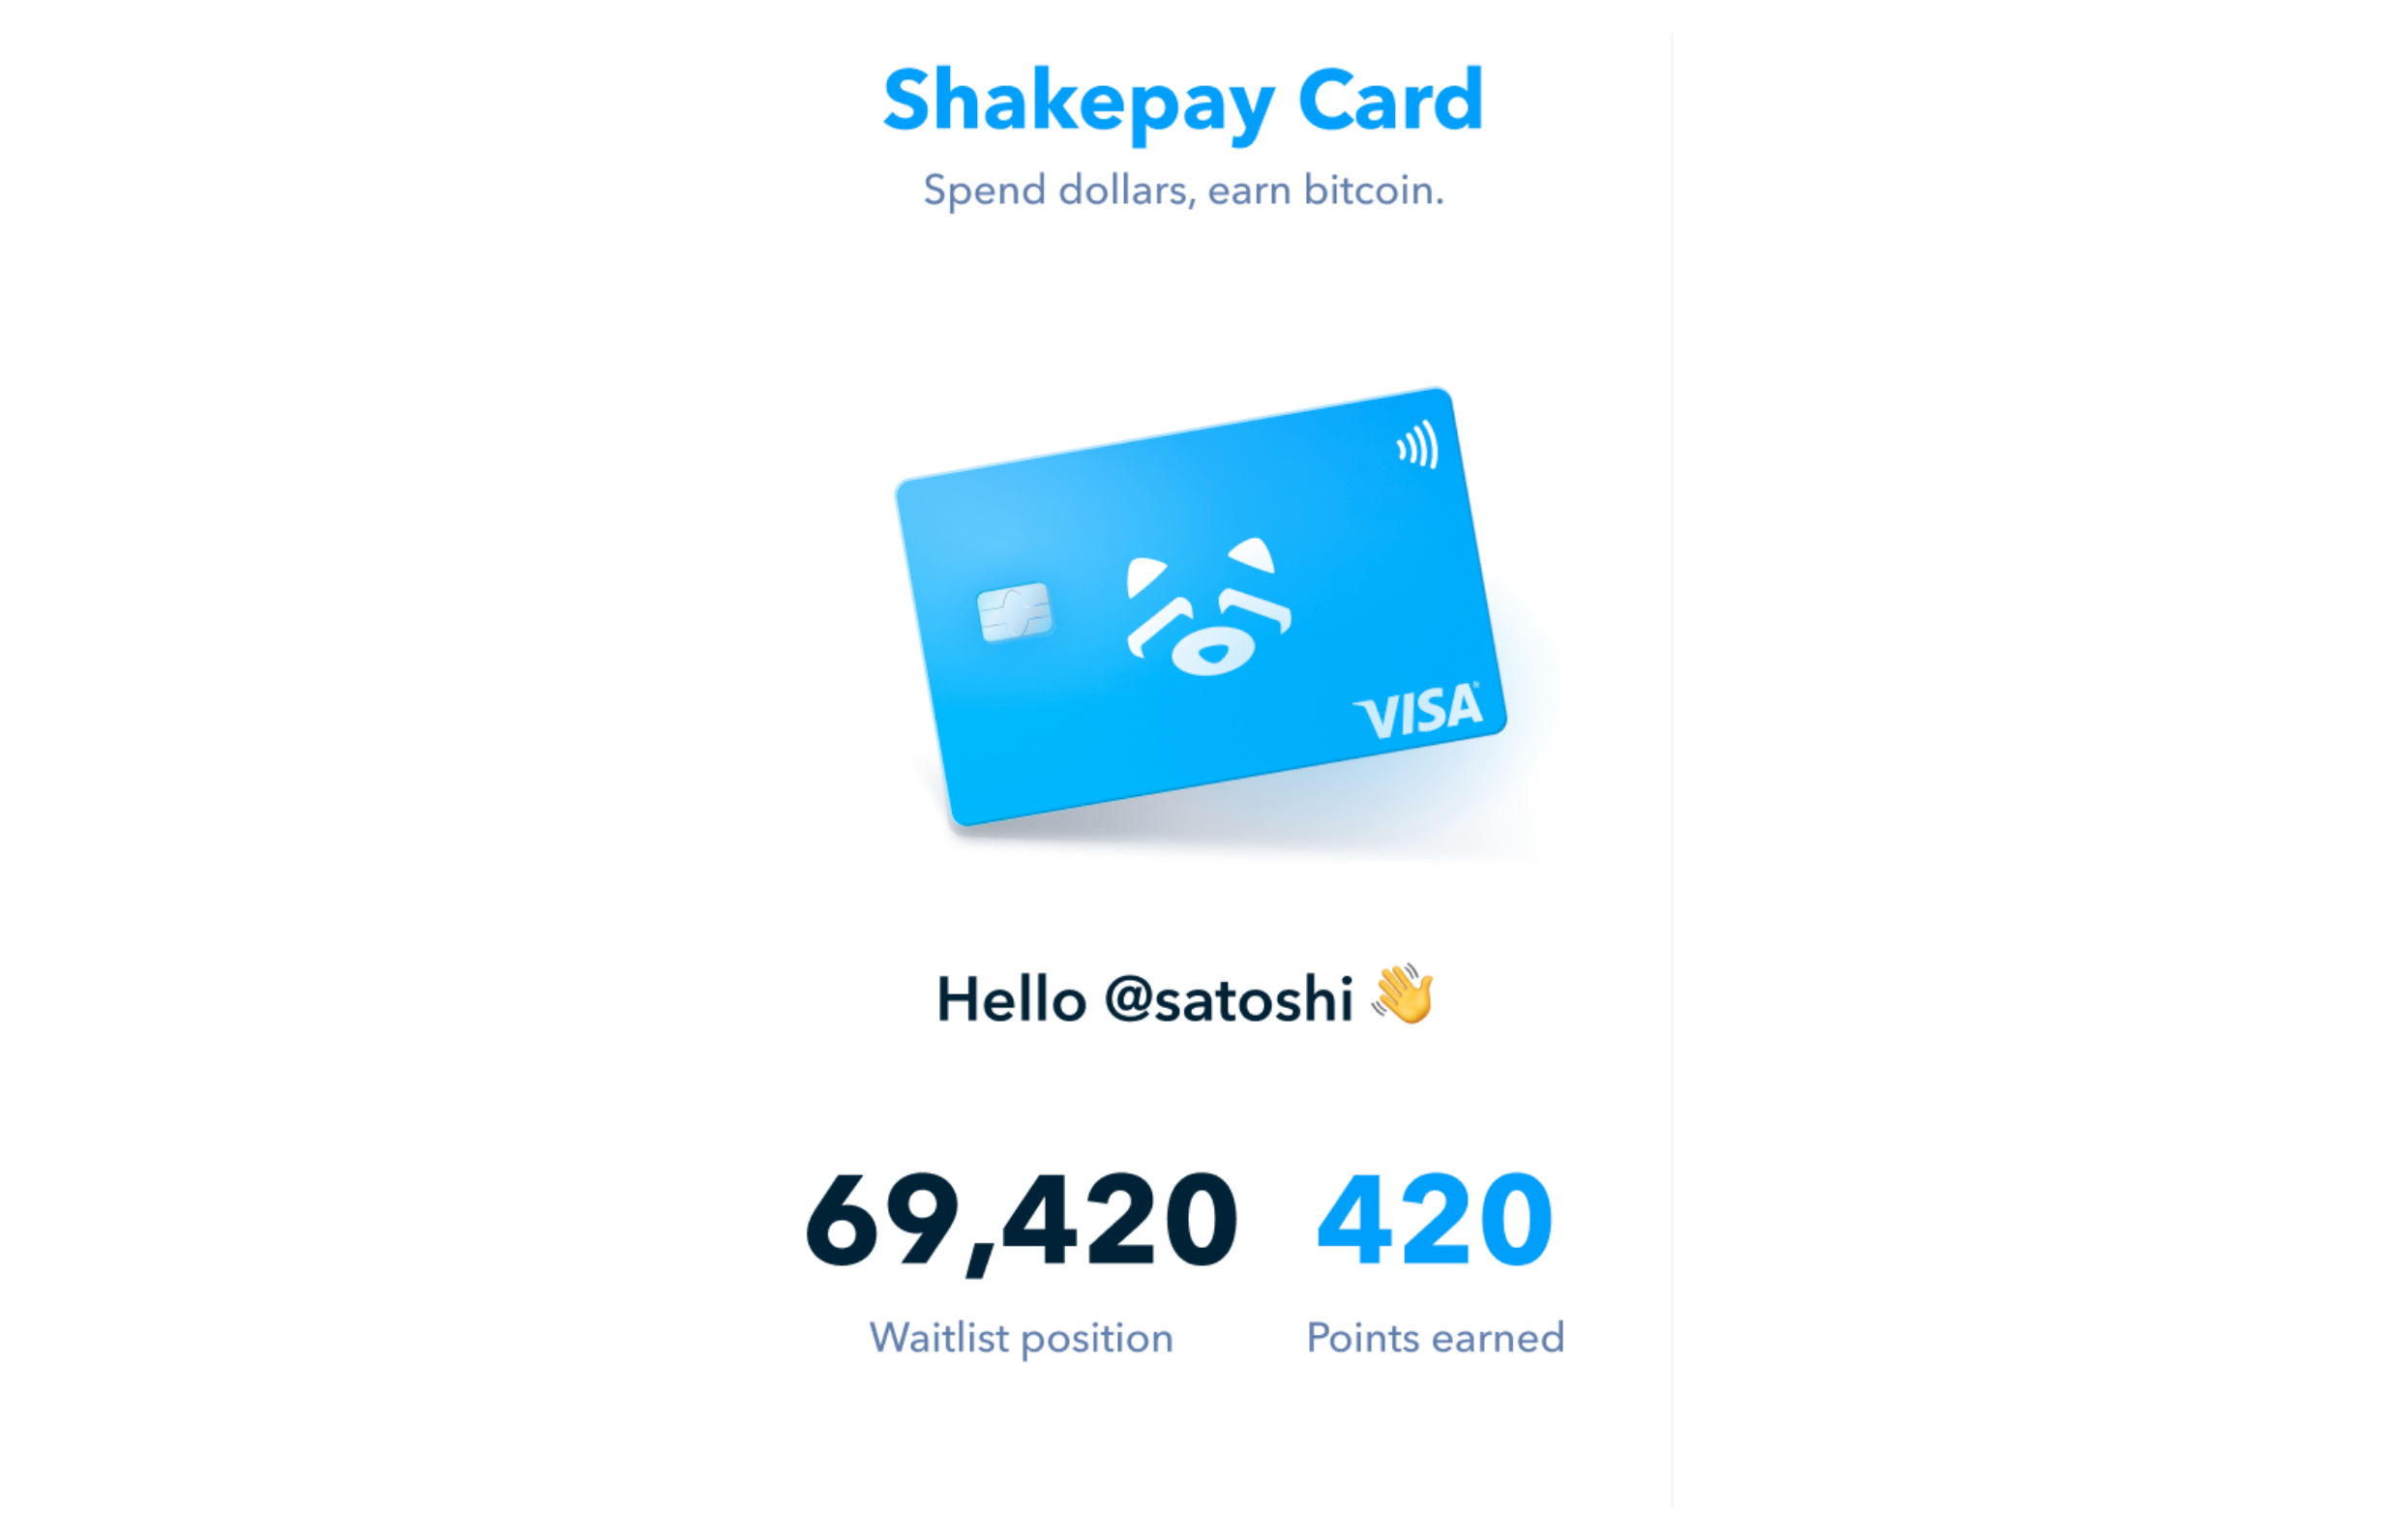 Shakepay card, buy bitcoin, buy ethereum, sell bitcoin, sell ethereum, Shakepay, buy crypto, Canada, cryptocurrency